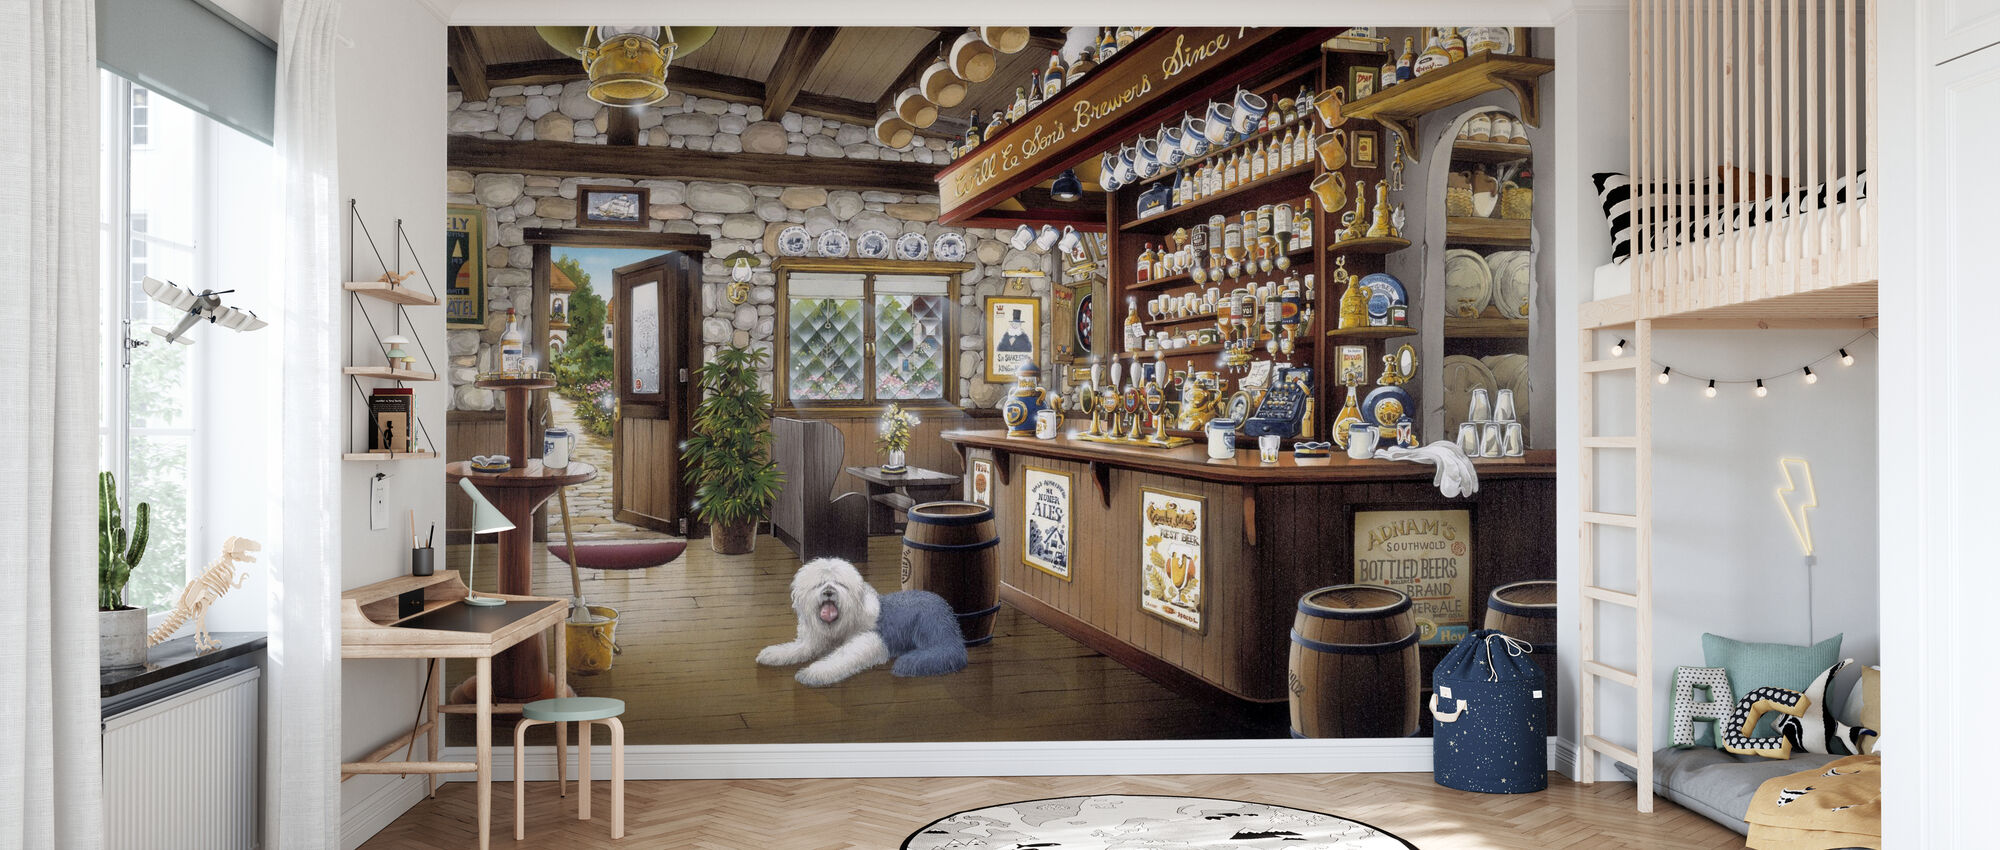 Old Pub with an English Sheepdog - Wallpaper - Kids Room